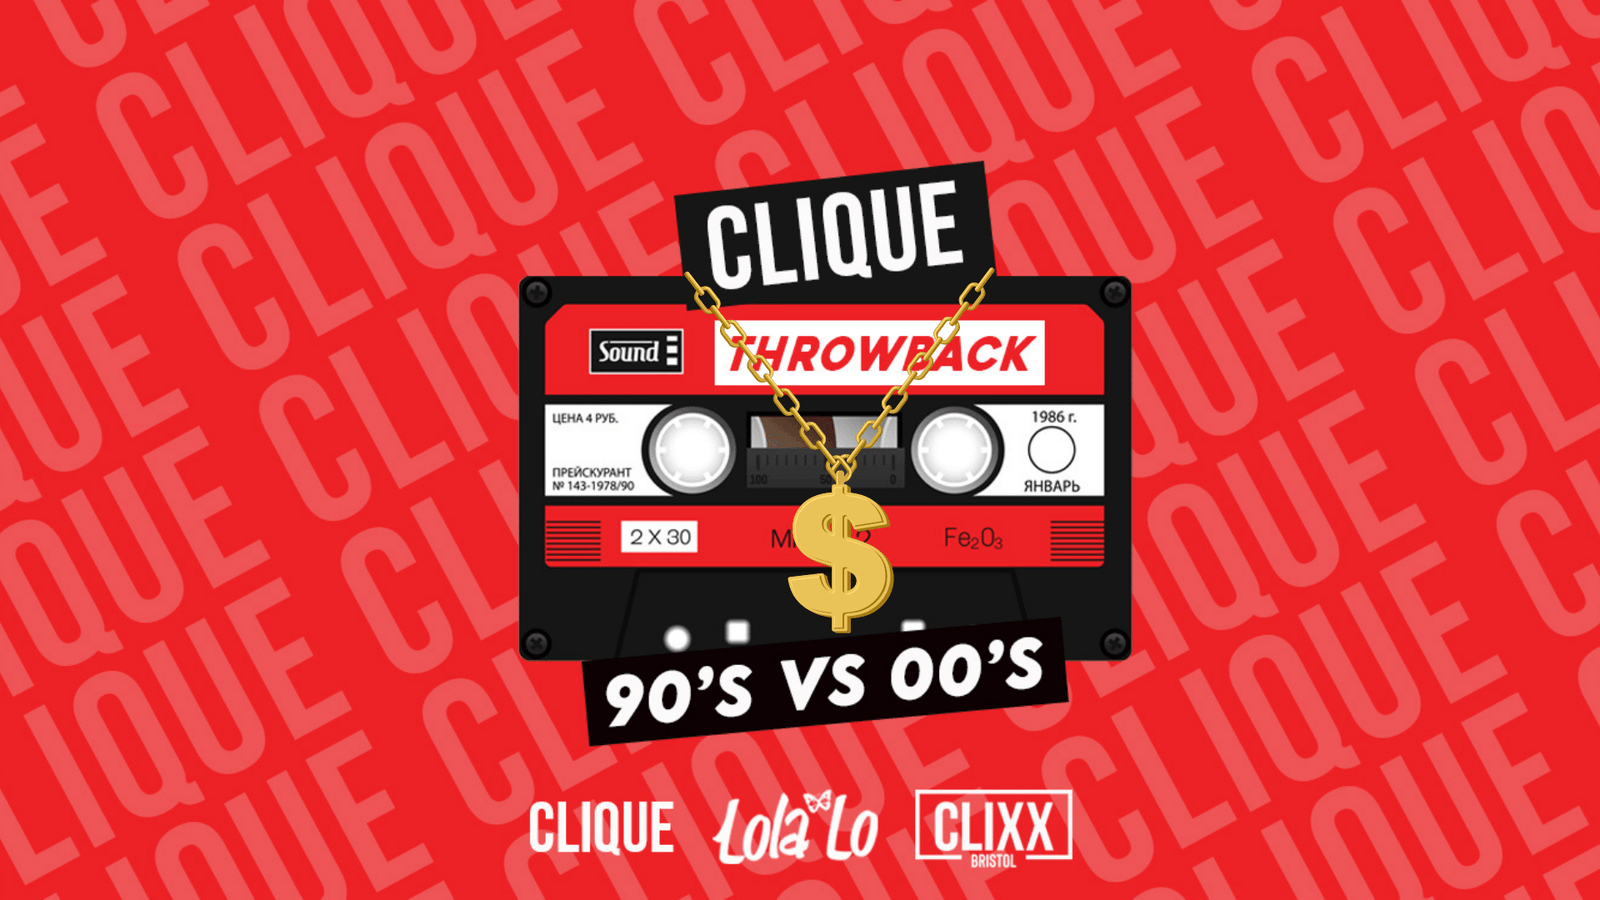 CLIQUE | Throwback  –  SOLD OUT – 100 SPACES ON THE DOOR